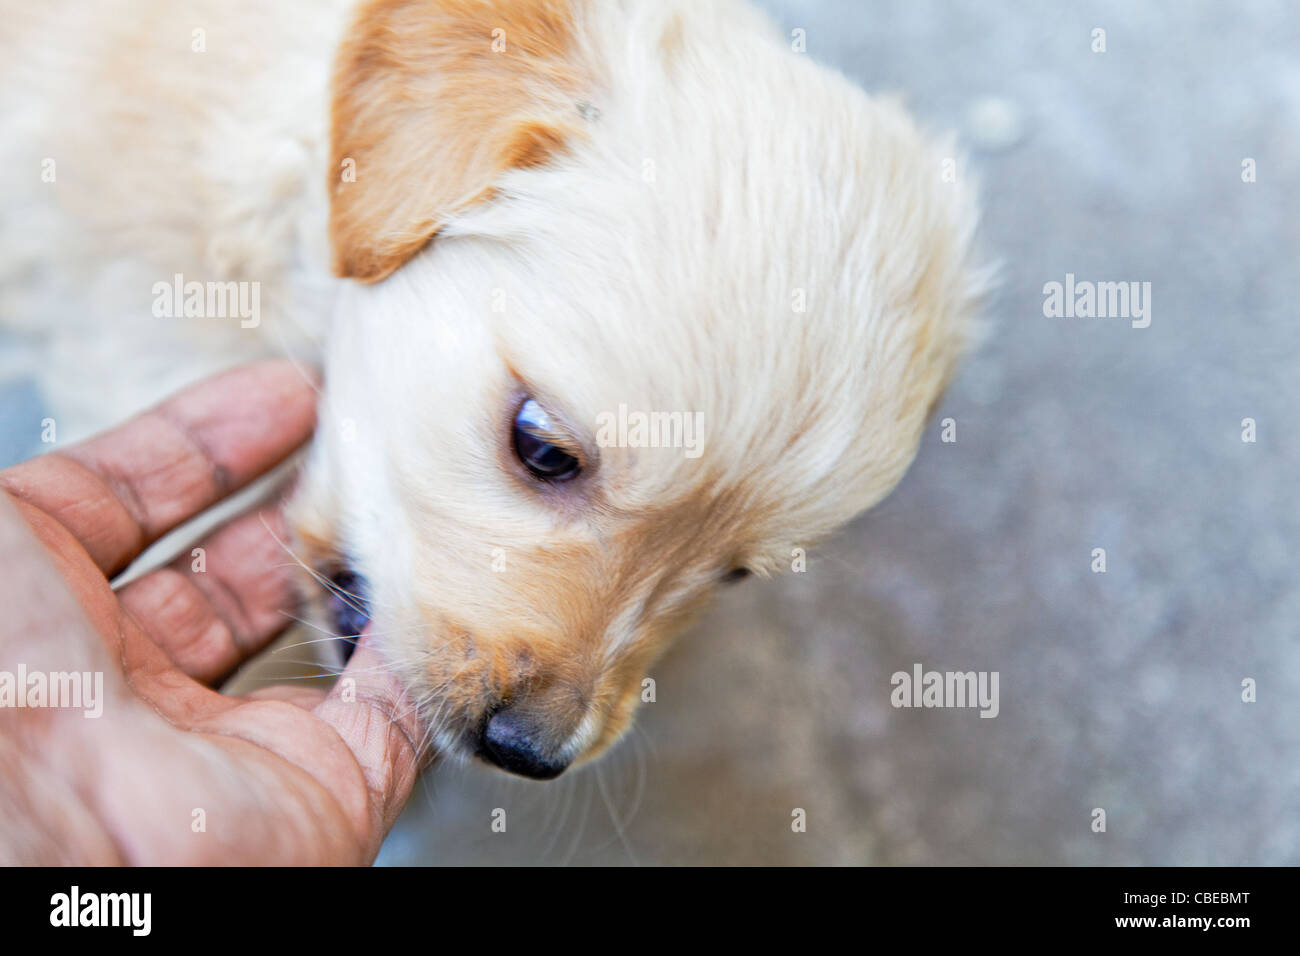 angry but playful Labrador golden retriever puppy biting a mans fingers, landscape horizontal with crop margins Stock Photo